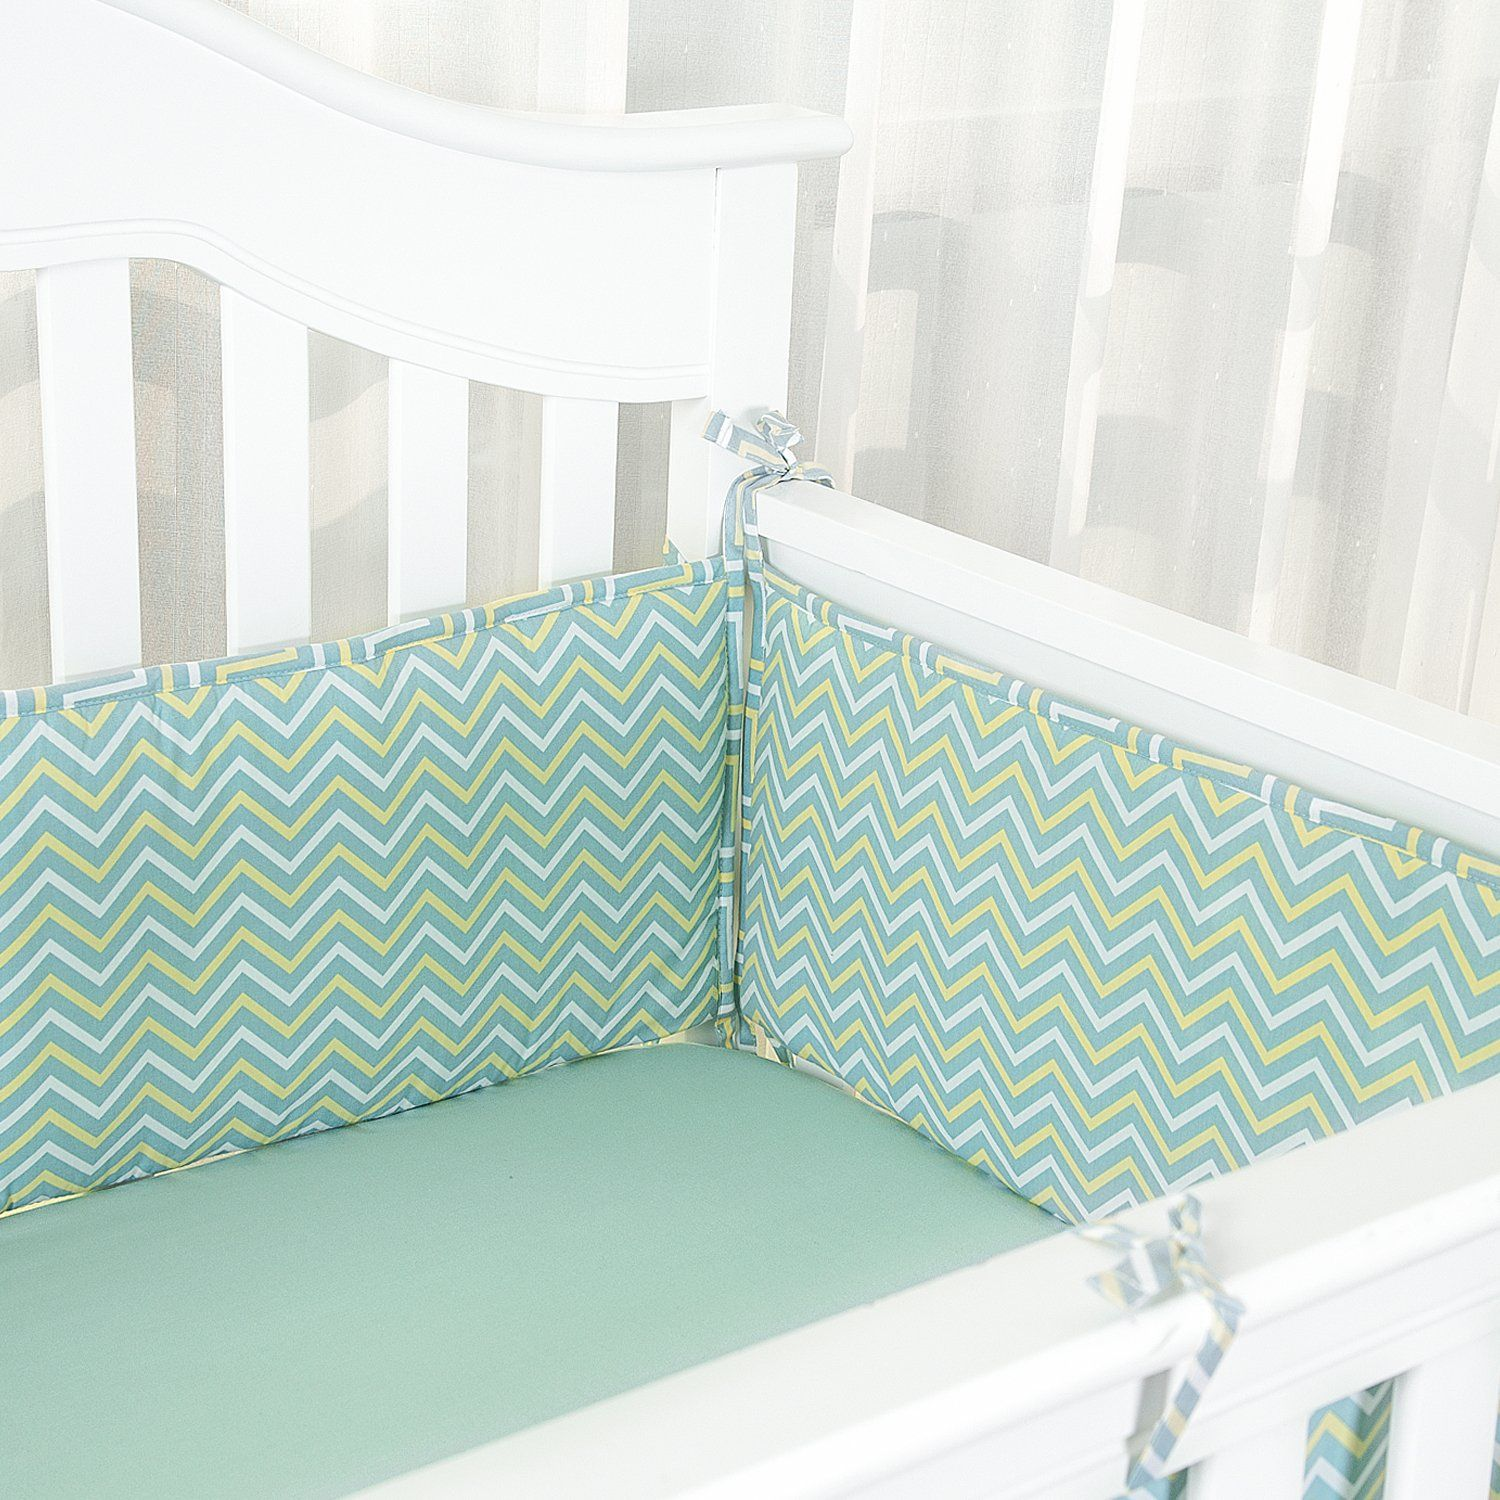 breathable classic chevron com crib mattress grey breathablebaby walmart liner ip mesh